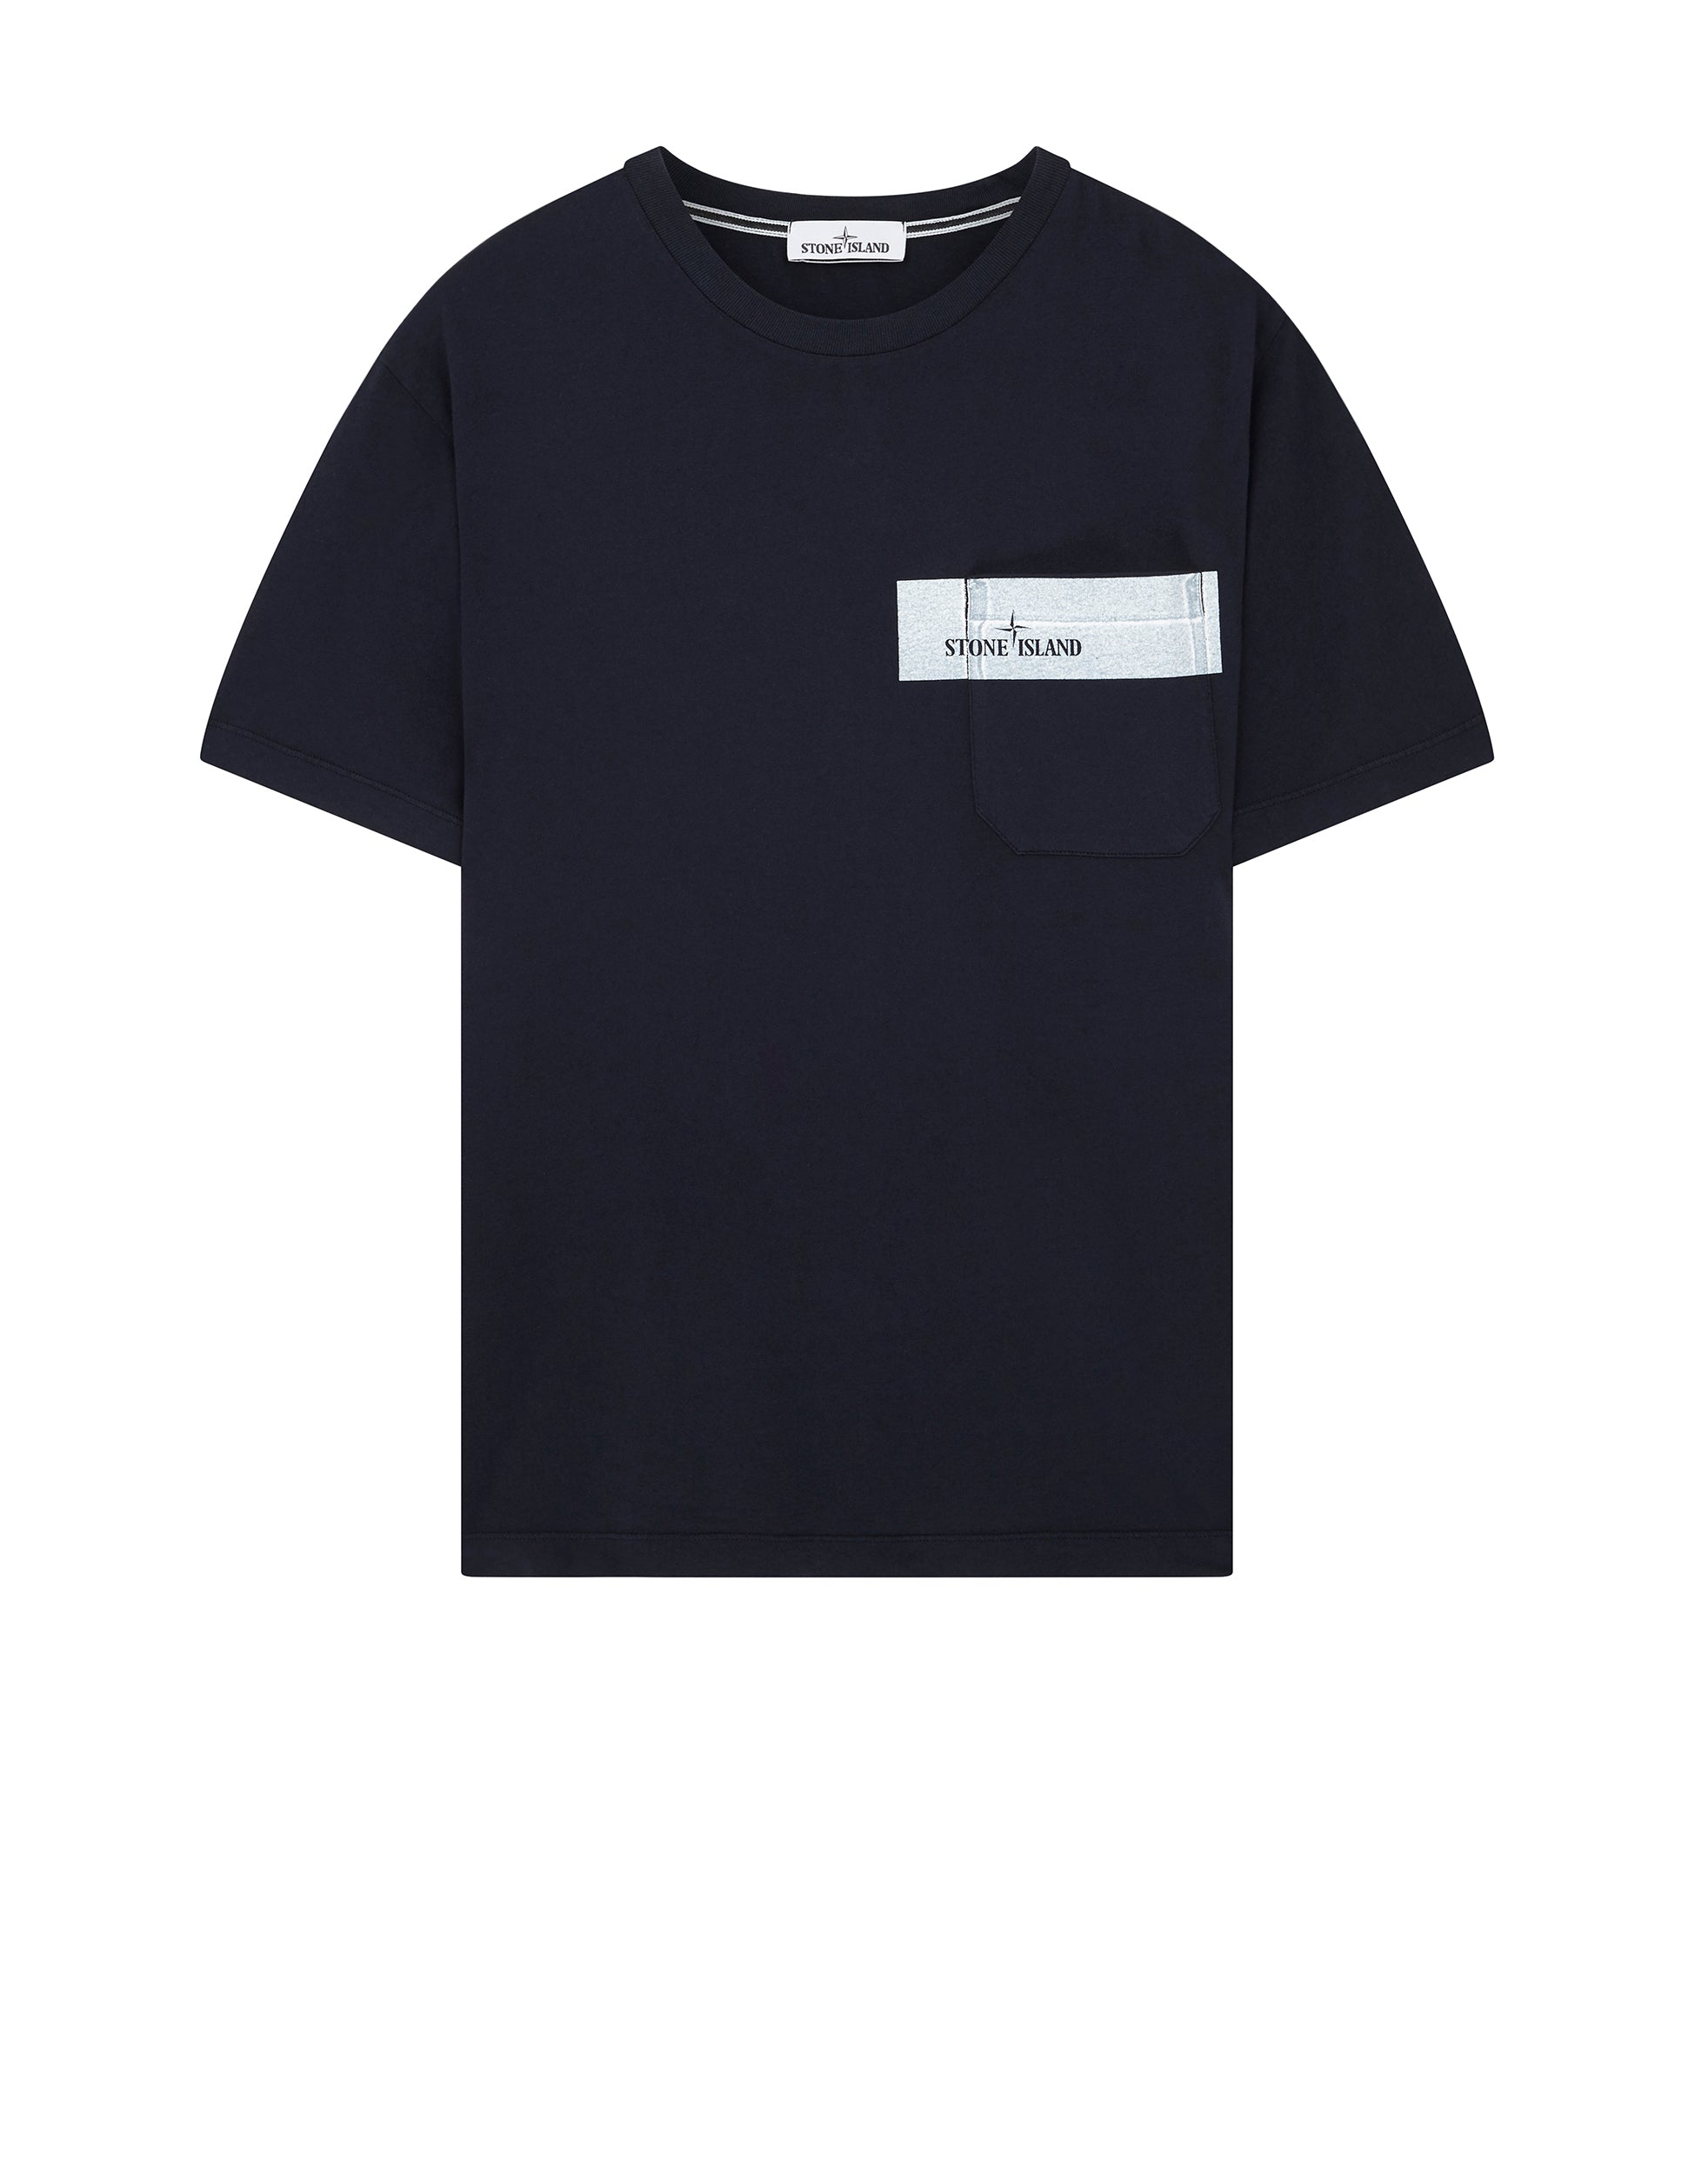 Unique Stone Island UK | 24794 POCKET LOGO T-Shirt in Navy Blue | Stone  HV69